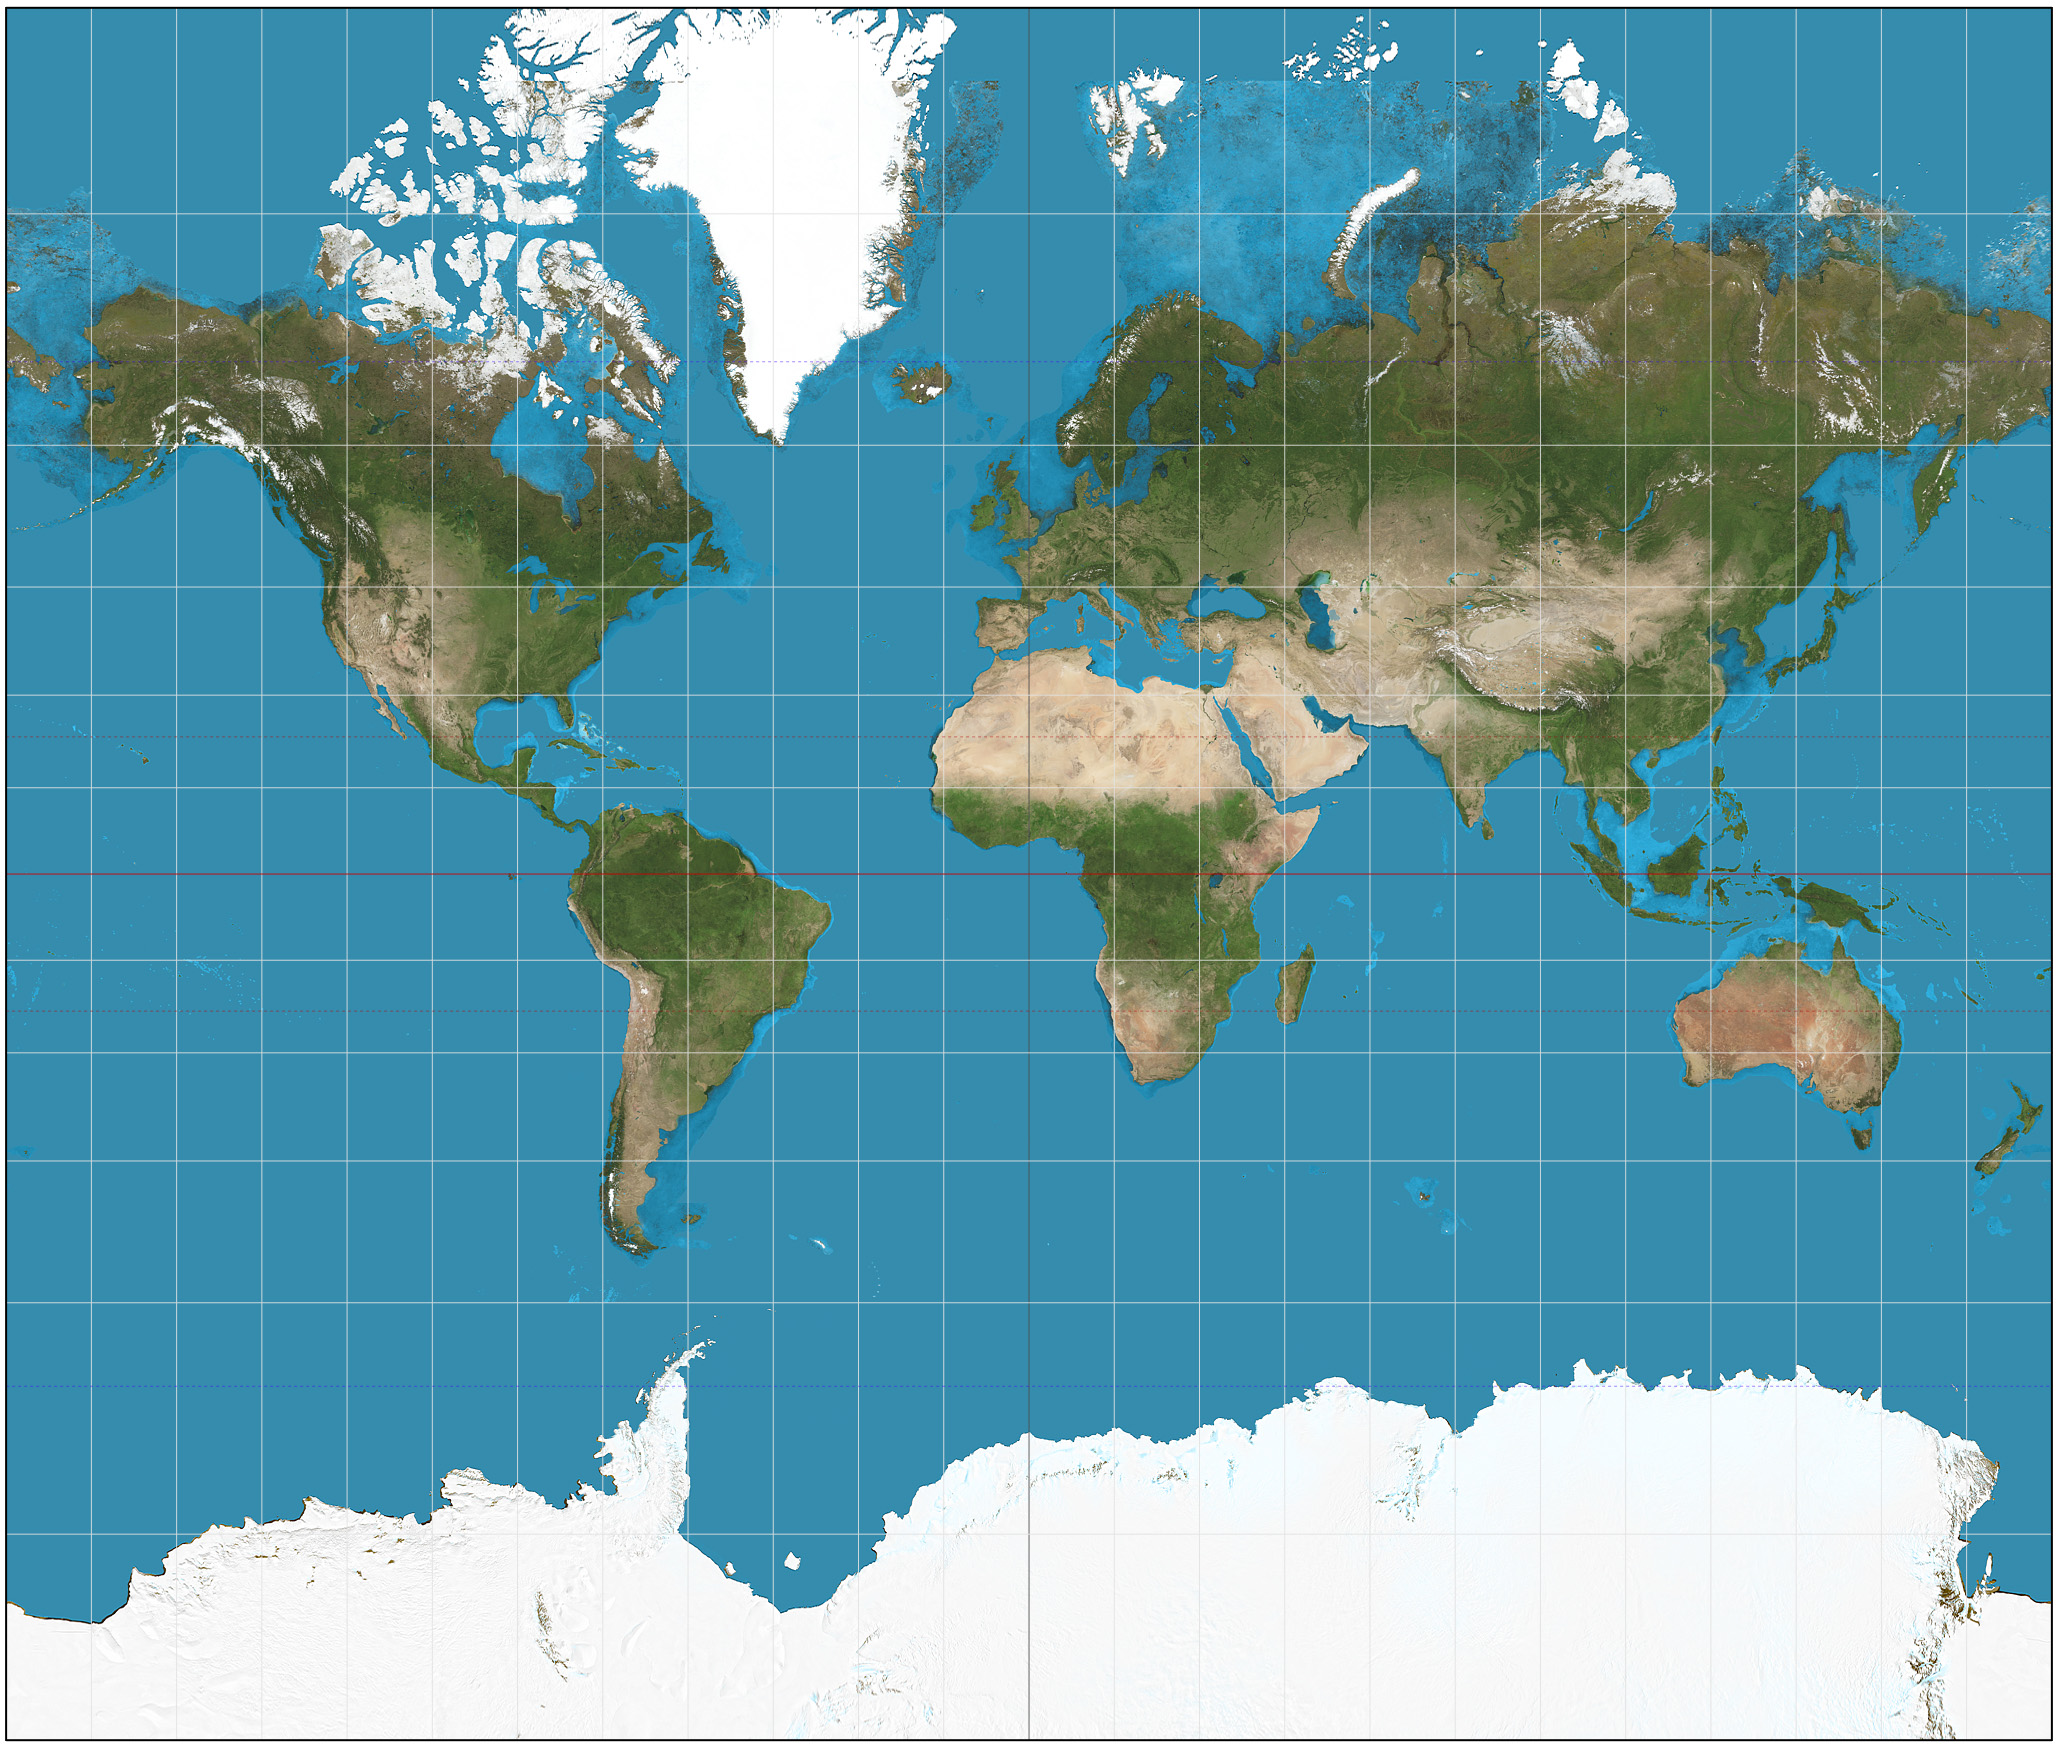 Mercator projection wikipedia mercator projection of the world between 82s and 82n gumiabroncs